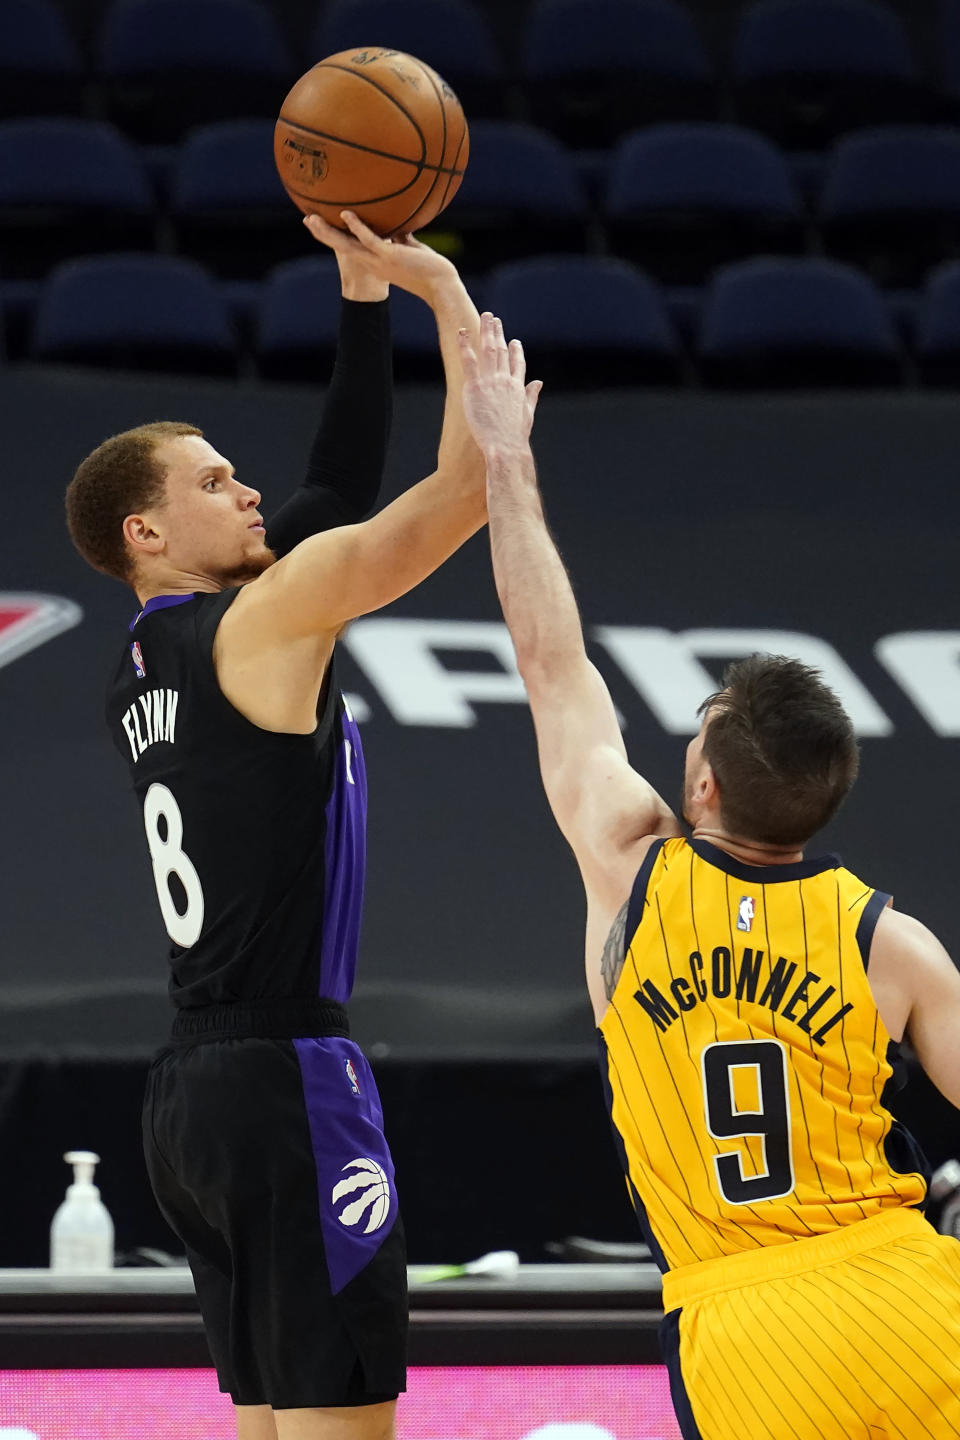 Toronto Raptors guard Malachi Flynn (8) puts up a three-point shot over Indiana Pacers guard T.J. McConnell (9) during the second half of an NBA basketball game Sunday, May 16, 2021, in Tampa, Fla. (AP Photo/Chris O'Meara)